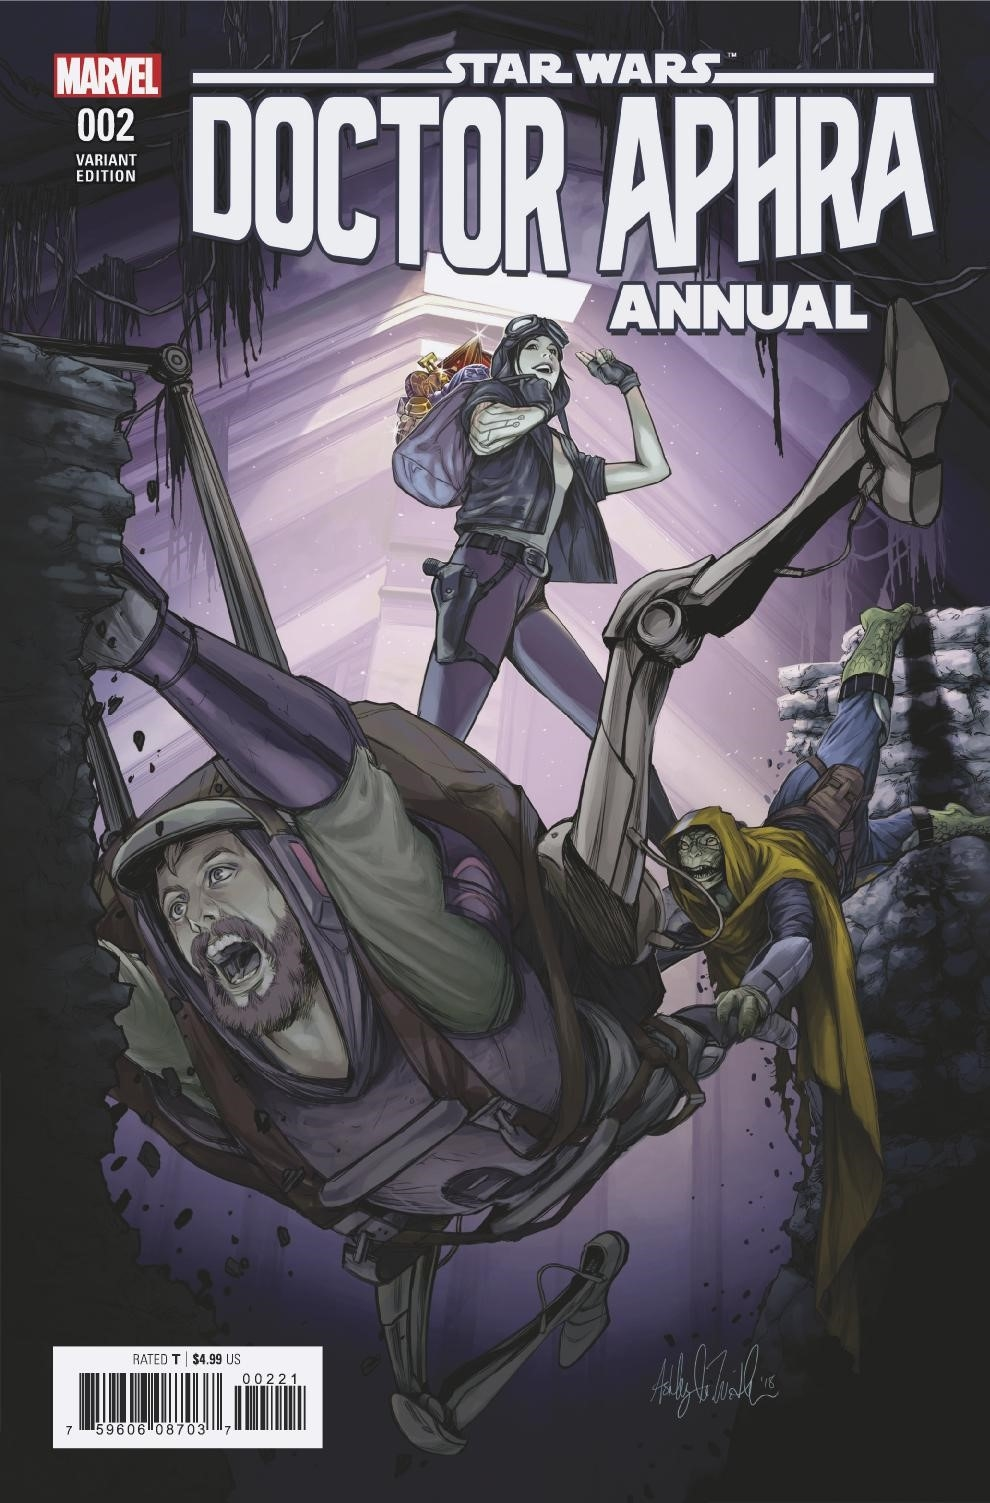 Doctor Aphra Annual #2 (Ashley Witter Variant Cover) (05.09.2018)